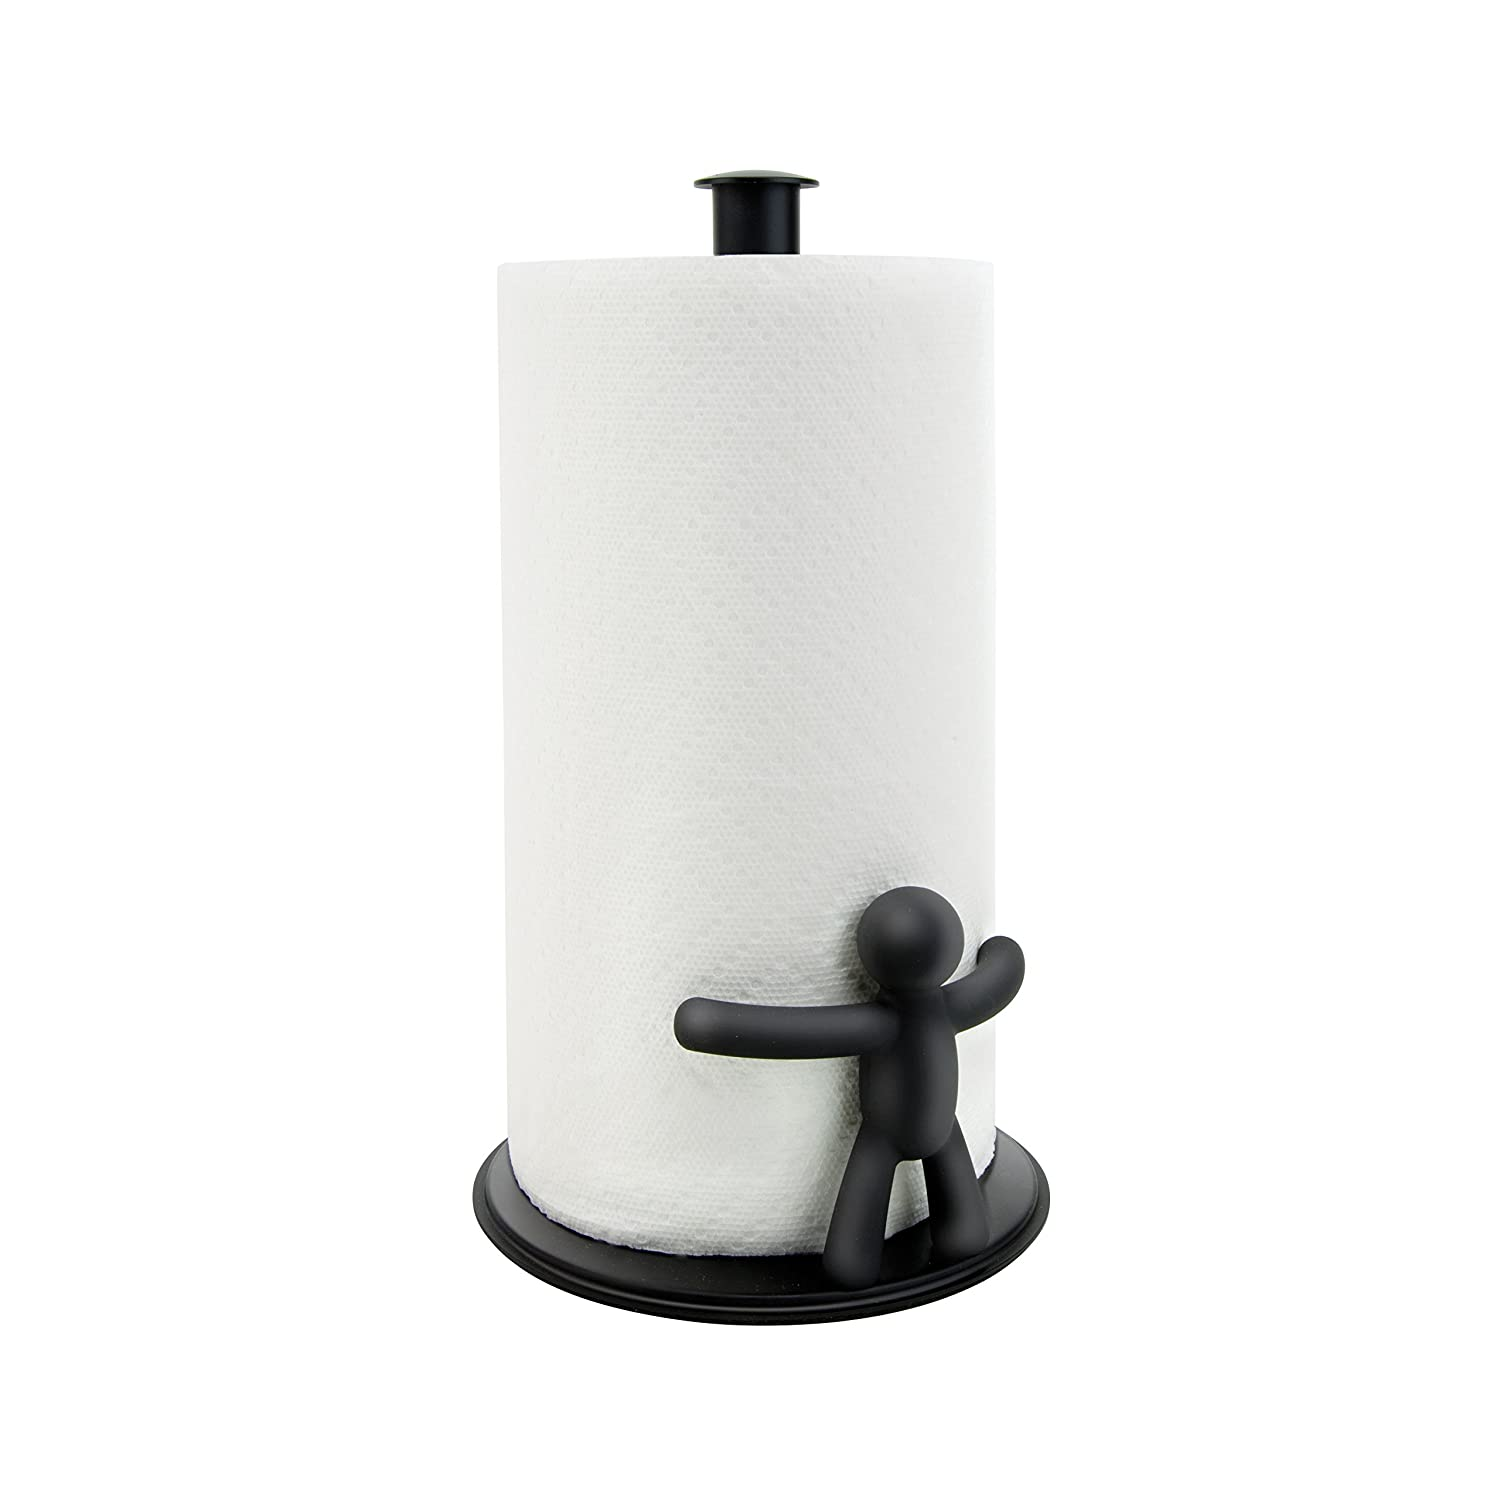 Top Amazon.com: Umbra Buddy Paper Towel Holder, Black: Home & Kitchen TR77